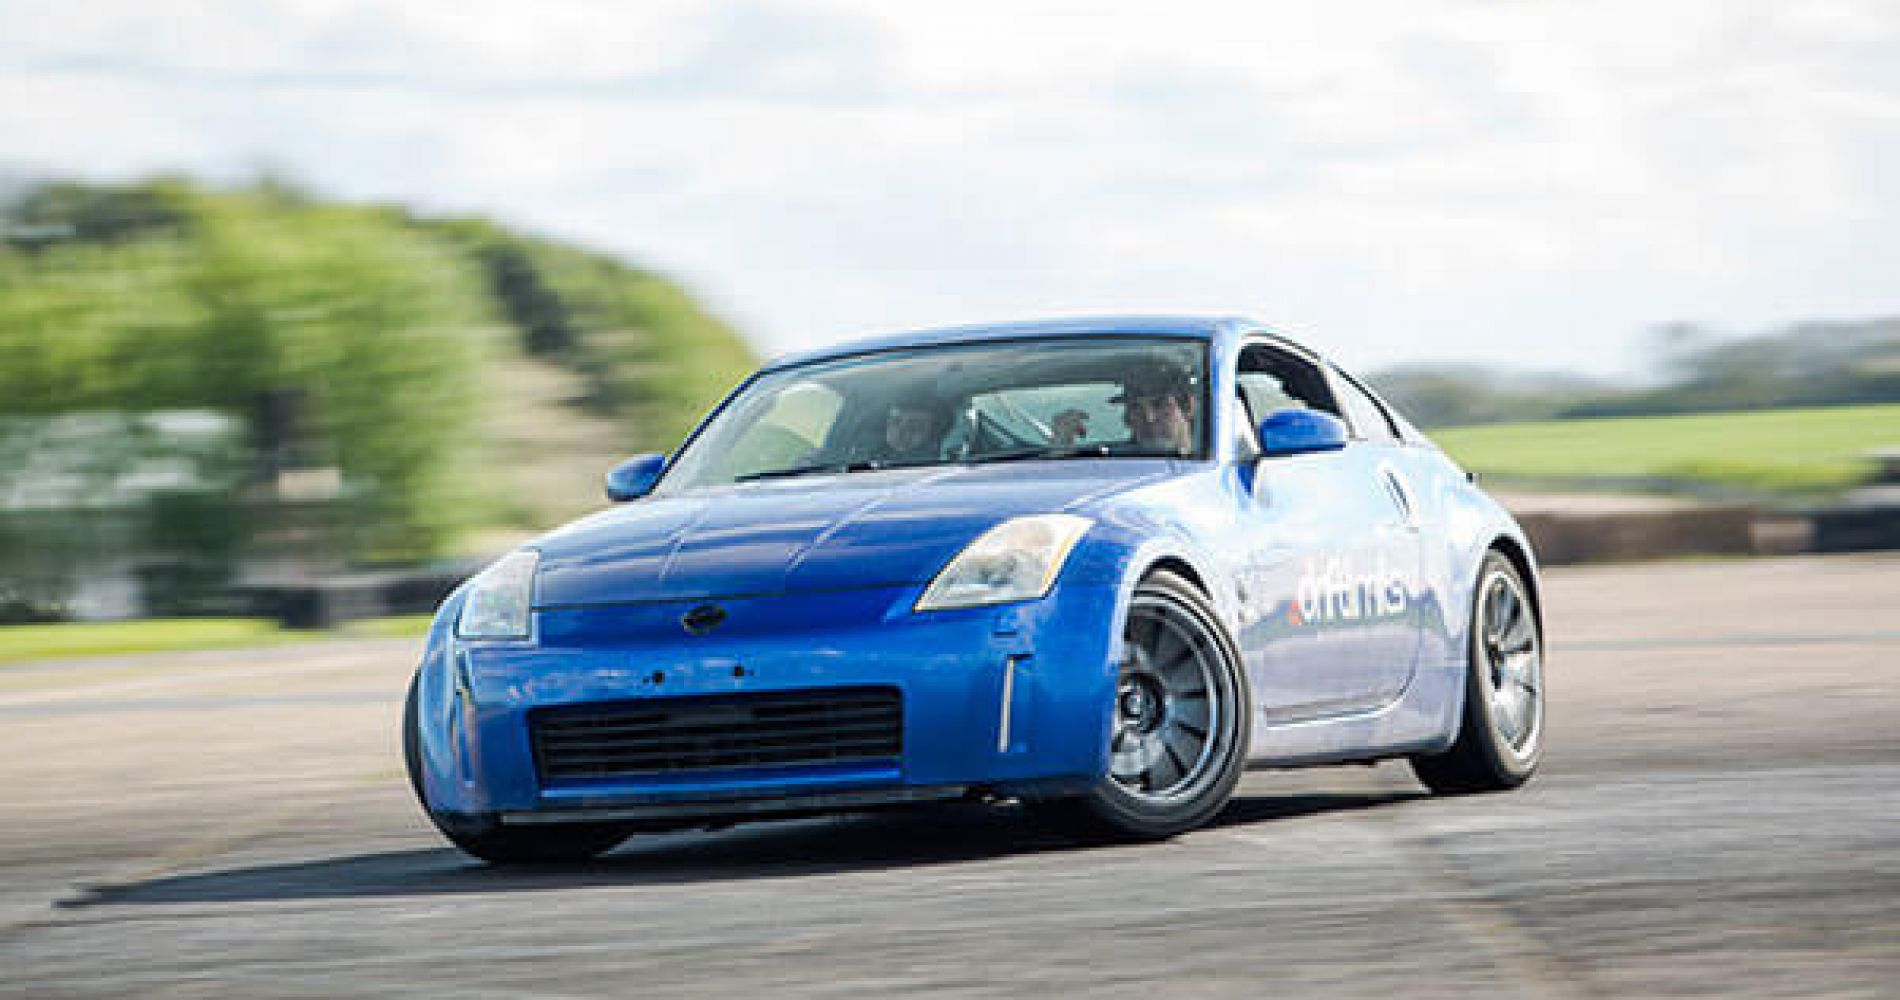 Nissan Gold Drifting Experience in Hertfordshire